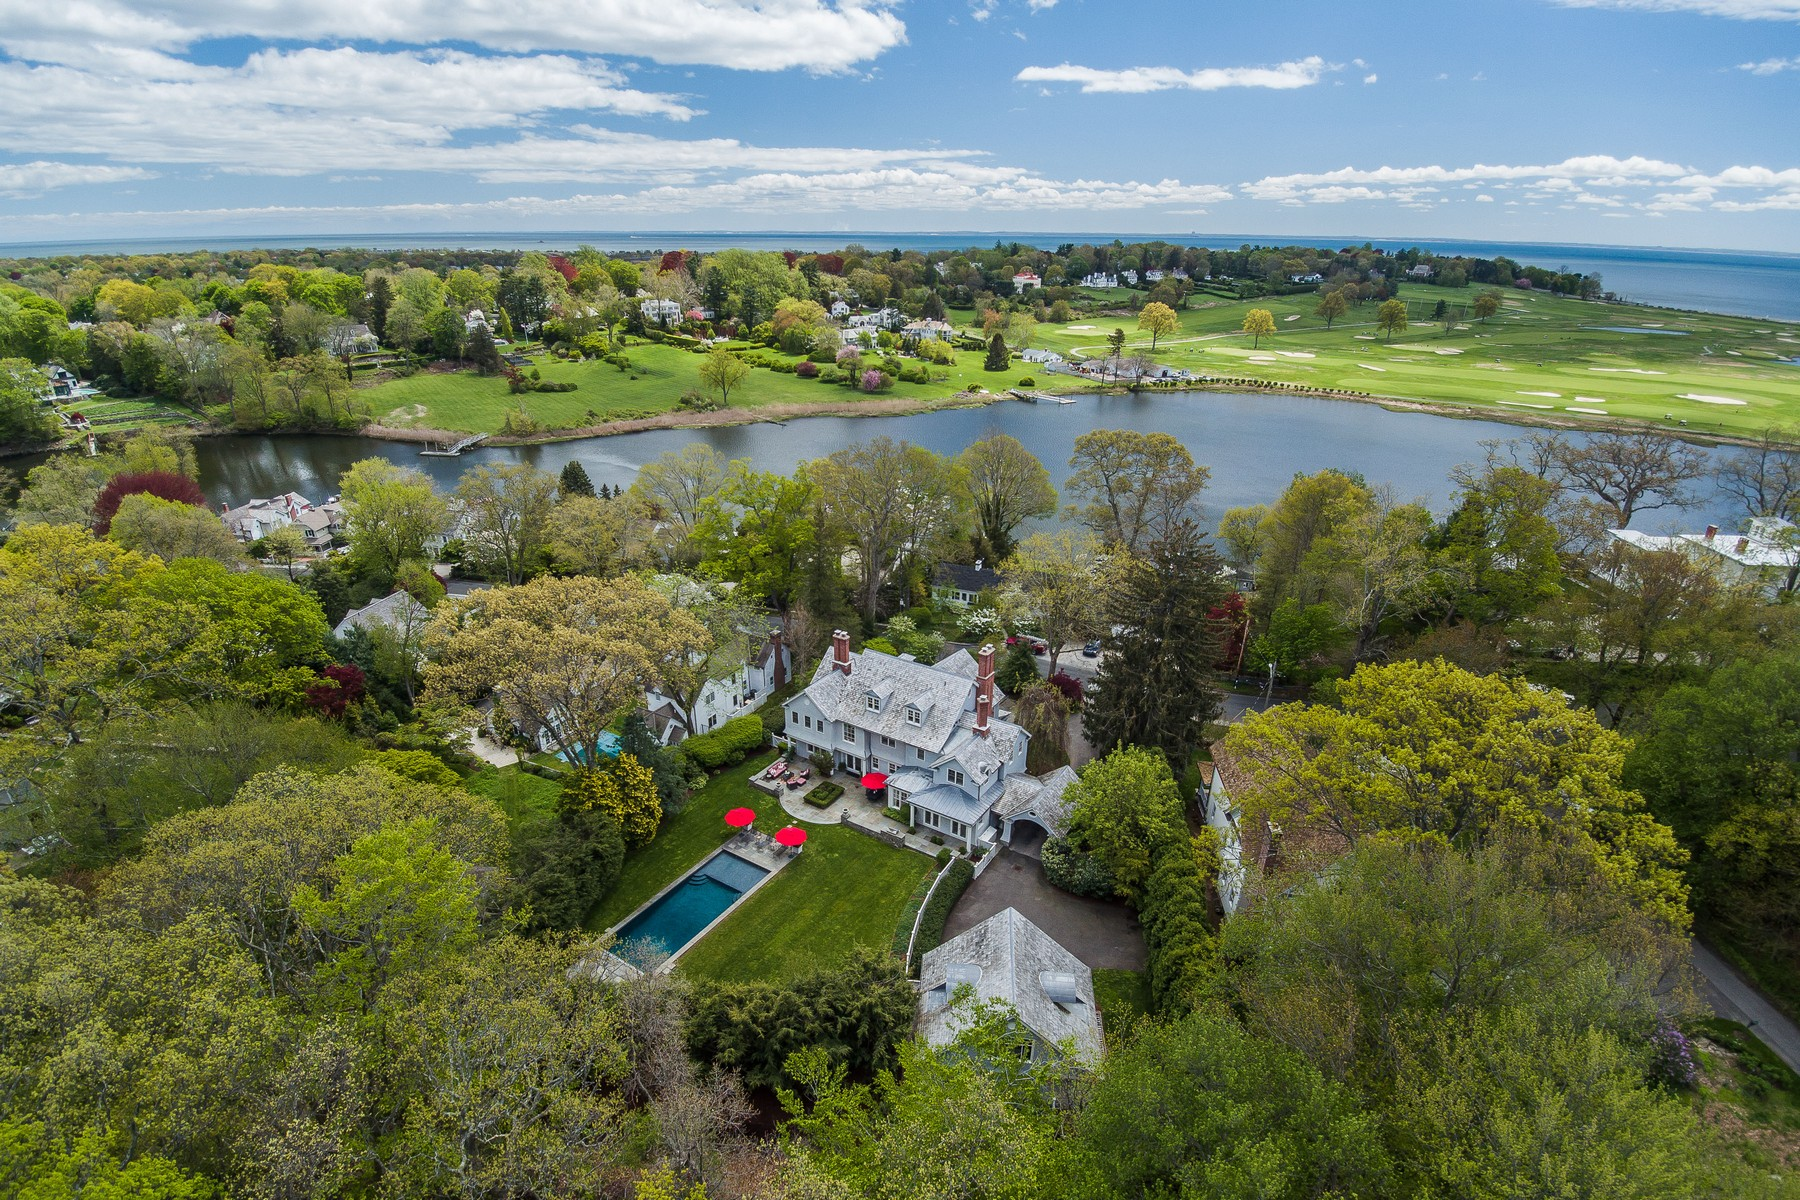 Single Family Home for Sale at SOUTHPORT SHINGLE STYLE ESTATE 322 Harbor Road Southport, Fairfield, Connecticut, 06890 United States